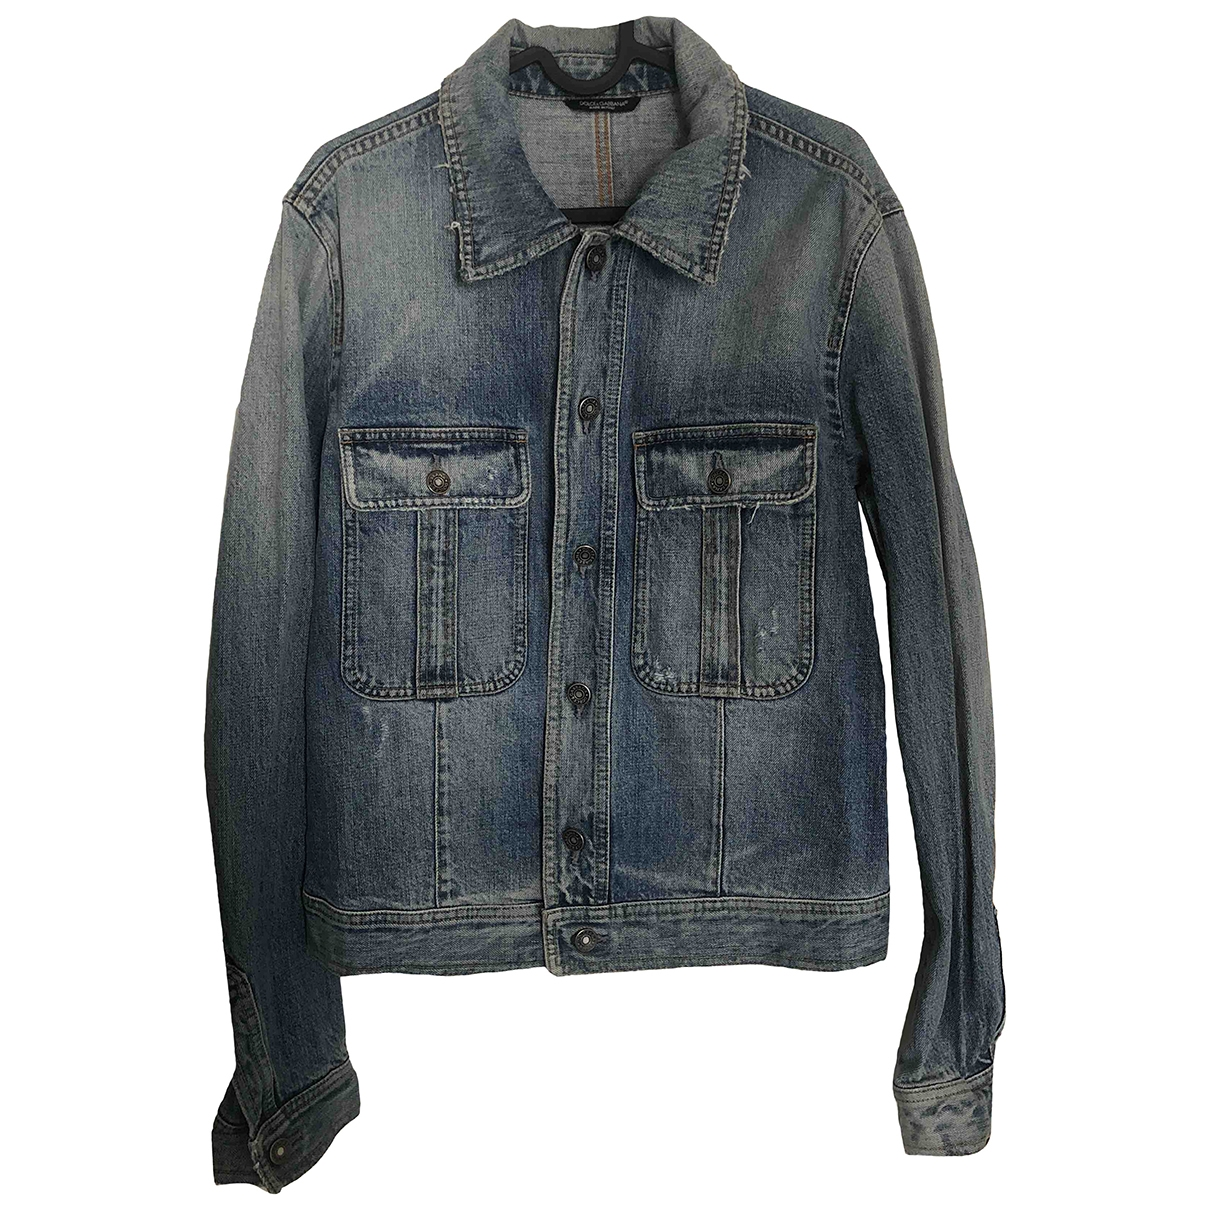 Dolce & Gabbana \N Blue Denim - Jeans jacket  for Men 44 IT